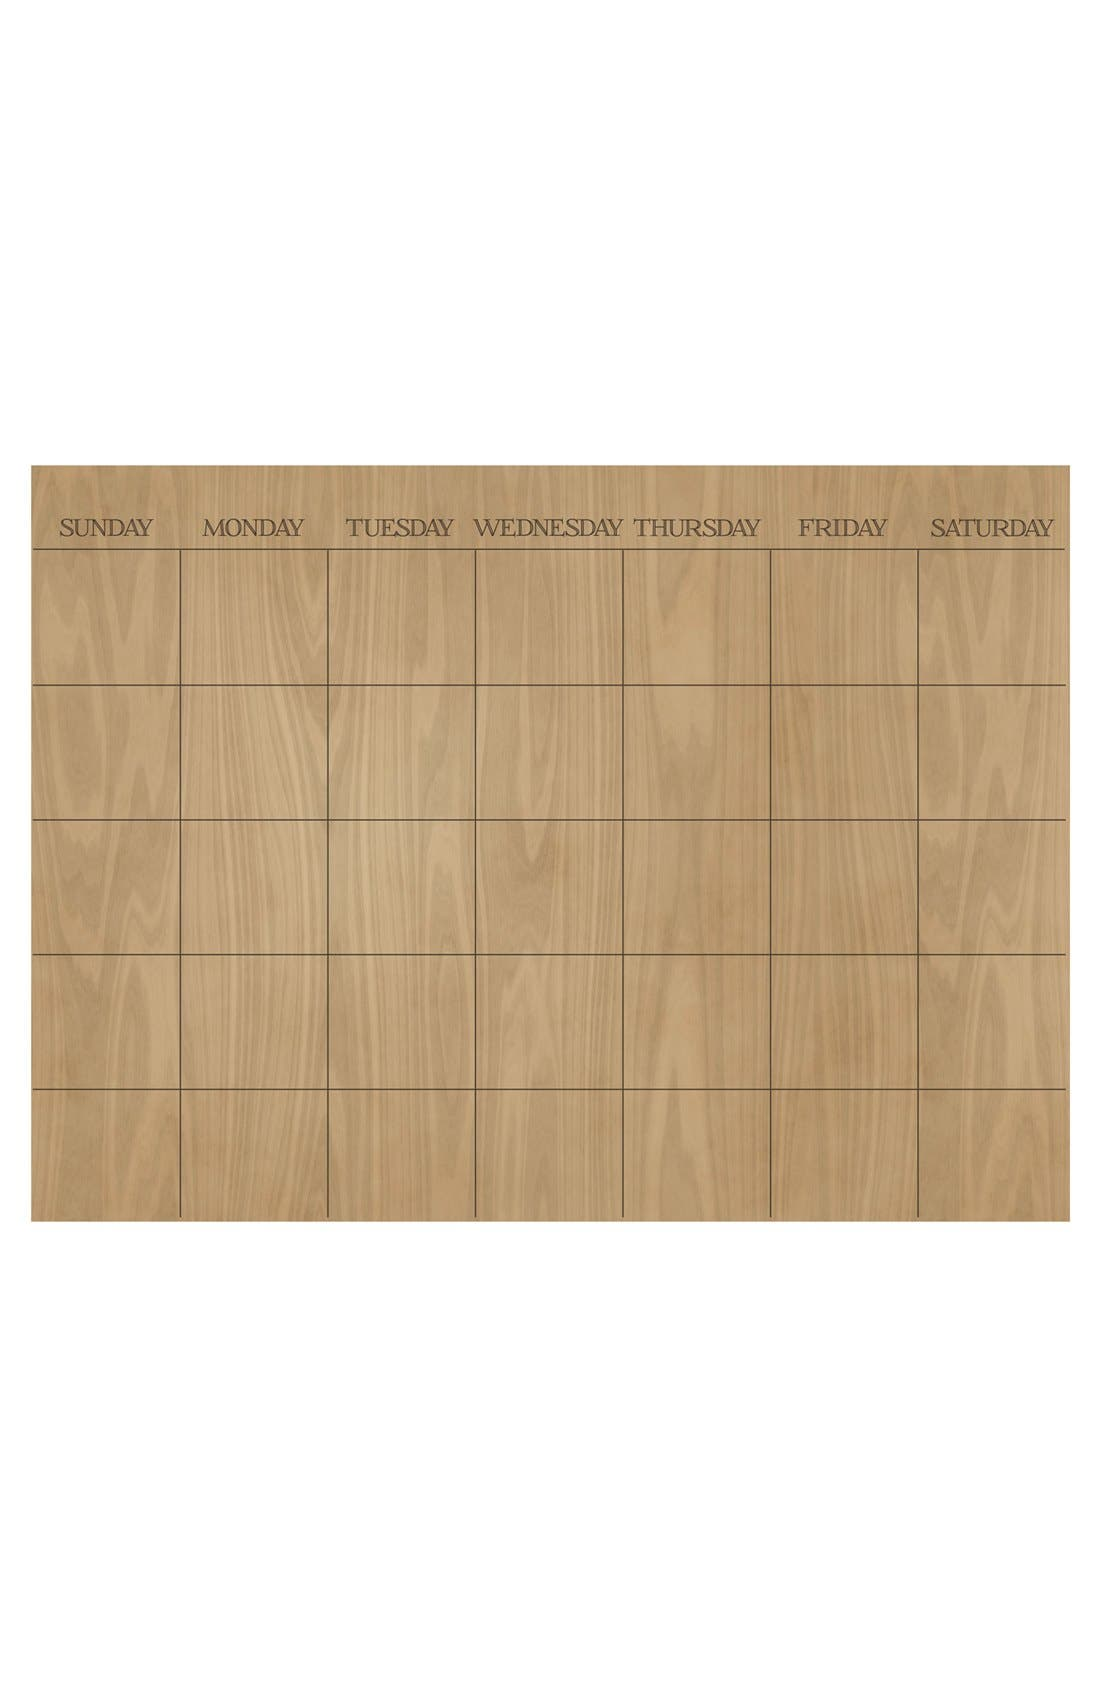 'Hardwood' Monthly Dry Erase Calendar,                             Main thumbnail 1, color,                             200